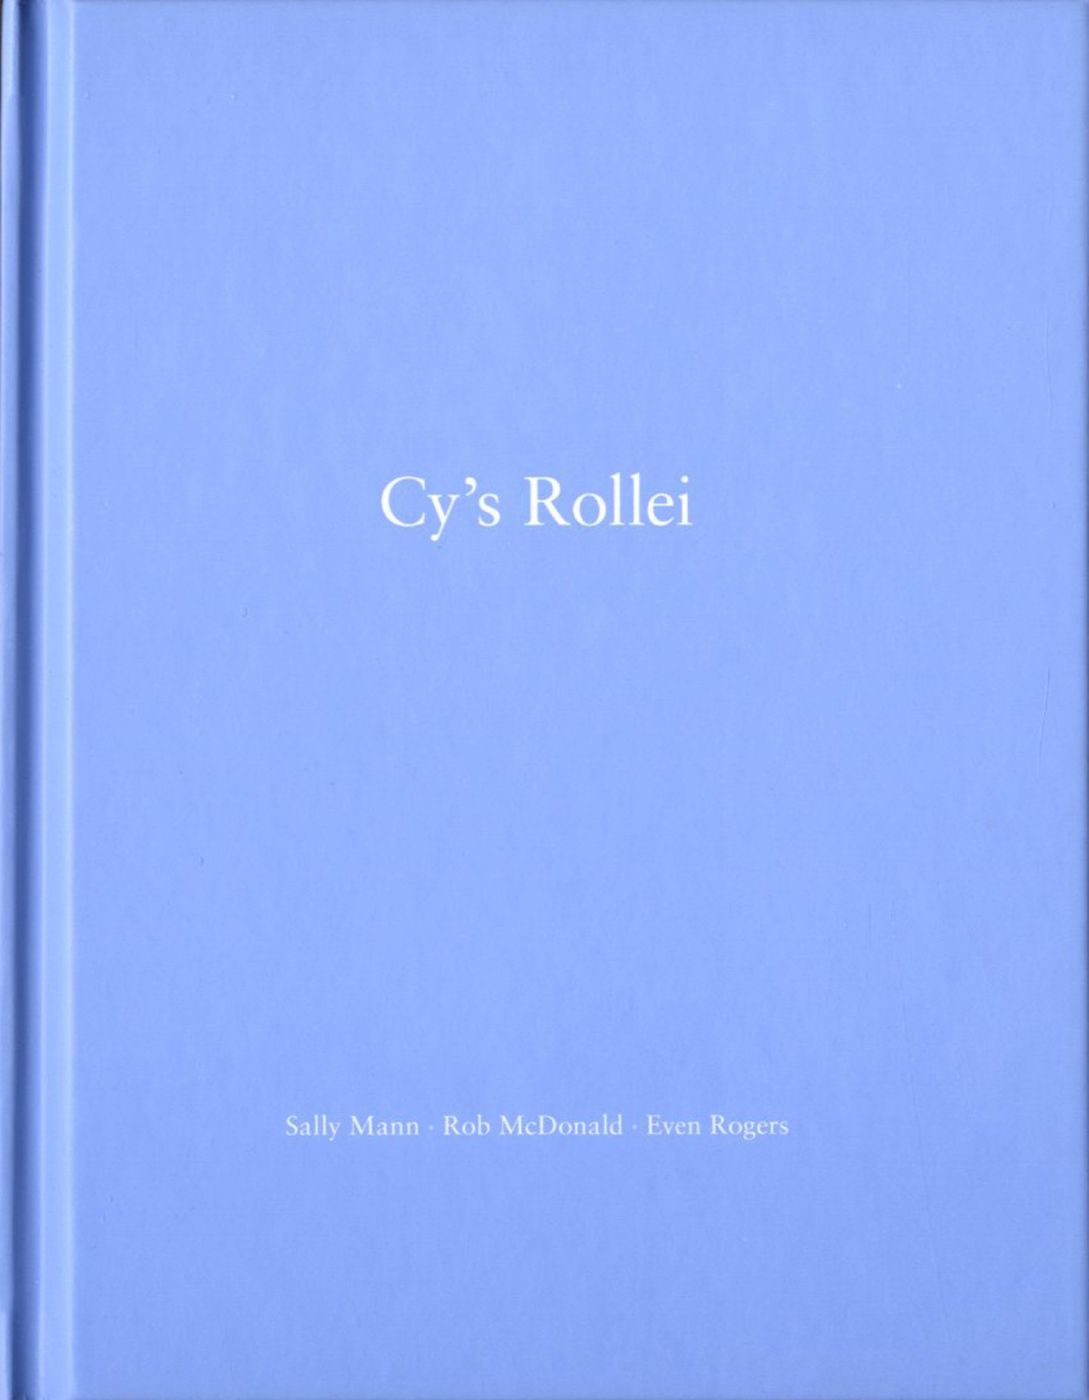 Sally Mann, Rob McDonald and Even Rogers: Cy's Rollei (One Picture Book #68), Limited Edition (with Print)